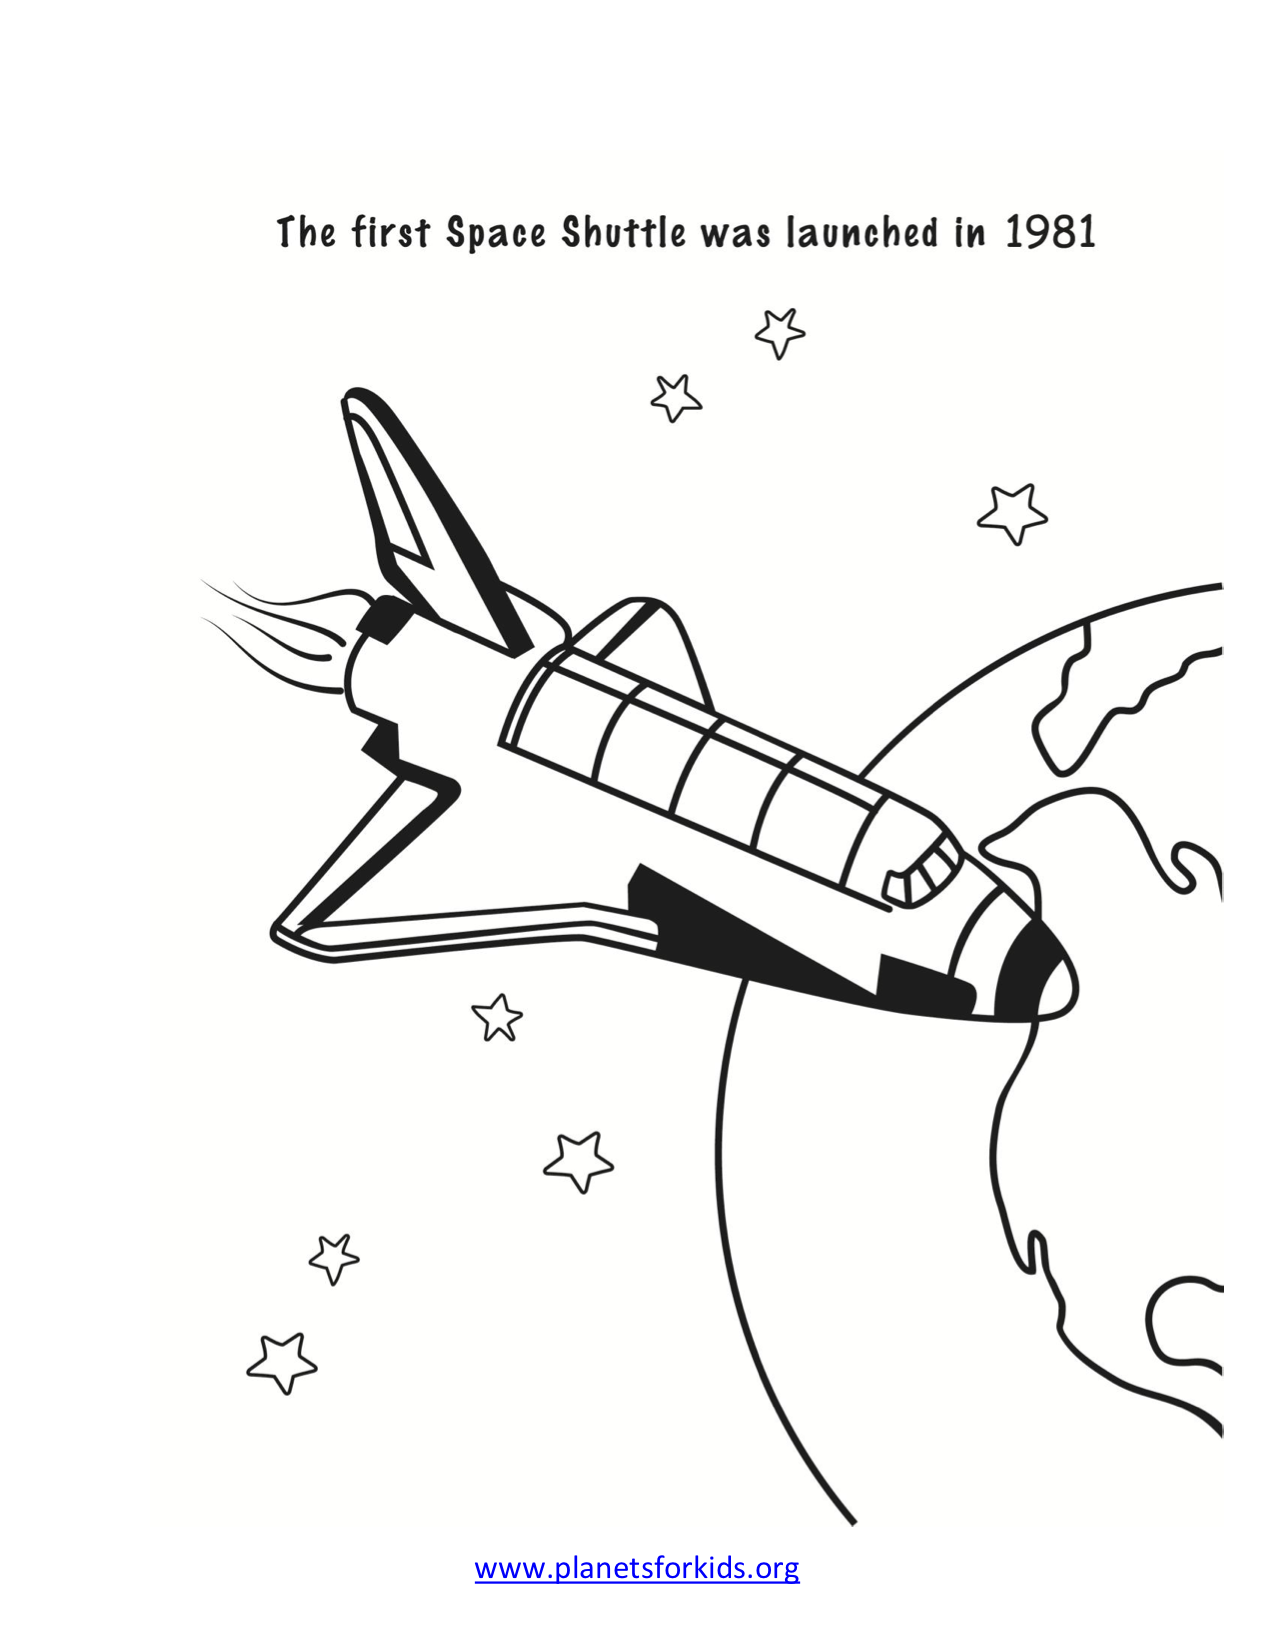 https://www.planetsforkids.org/coloring.html